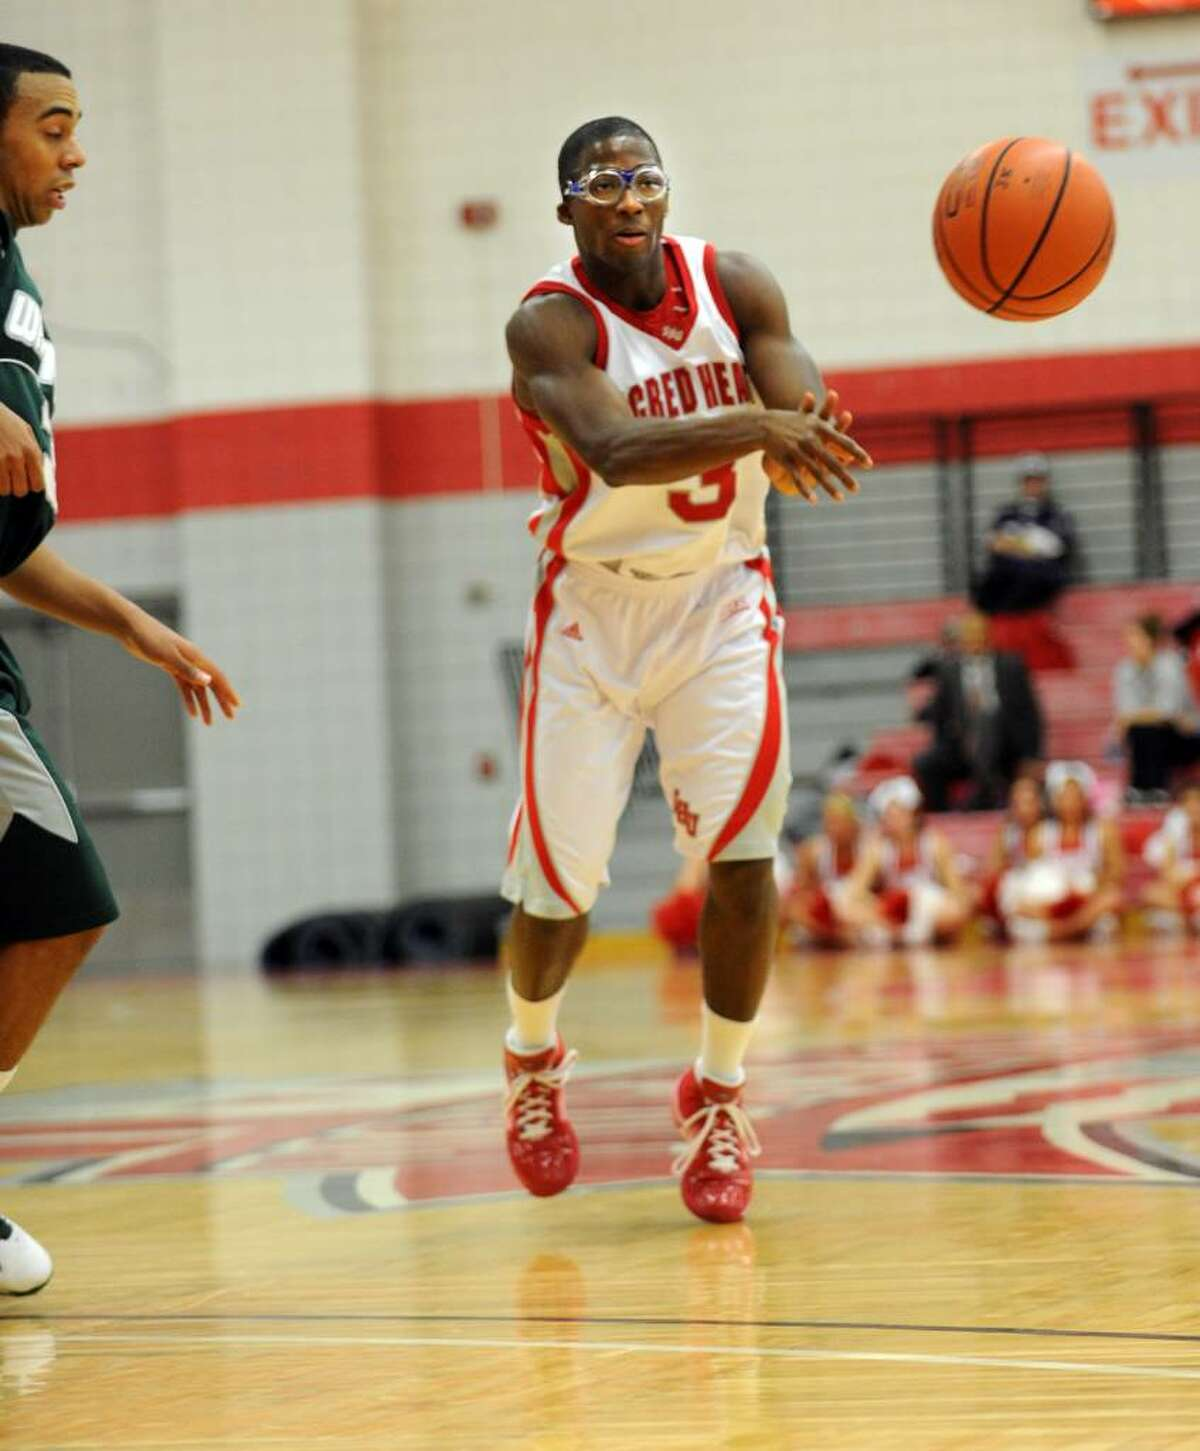 Sacred Heart's Jerrell Thompson passes the ball during the first half of Thursday night's game against Wagner.